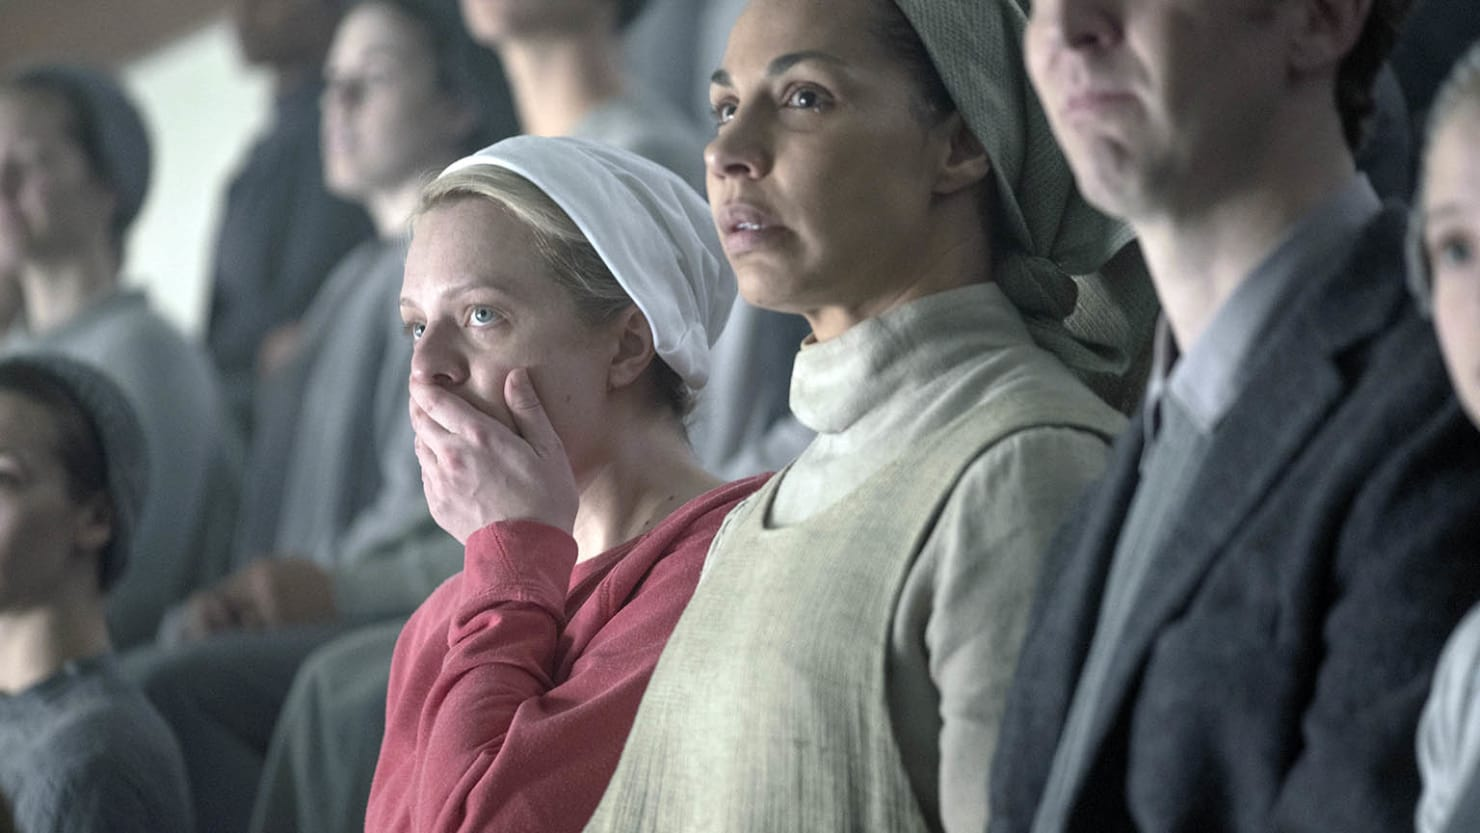 The Handmaids Tale Is Way Too Real And Watching It Has Become Masochistic